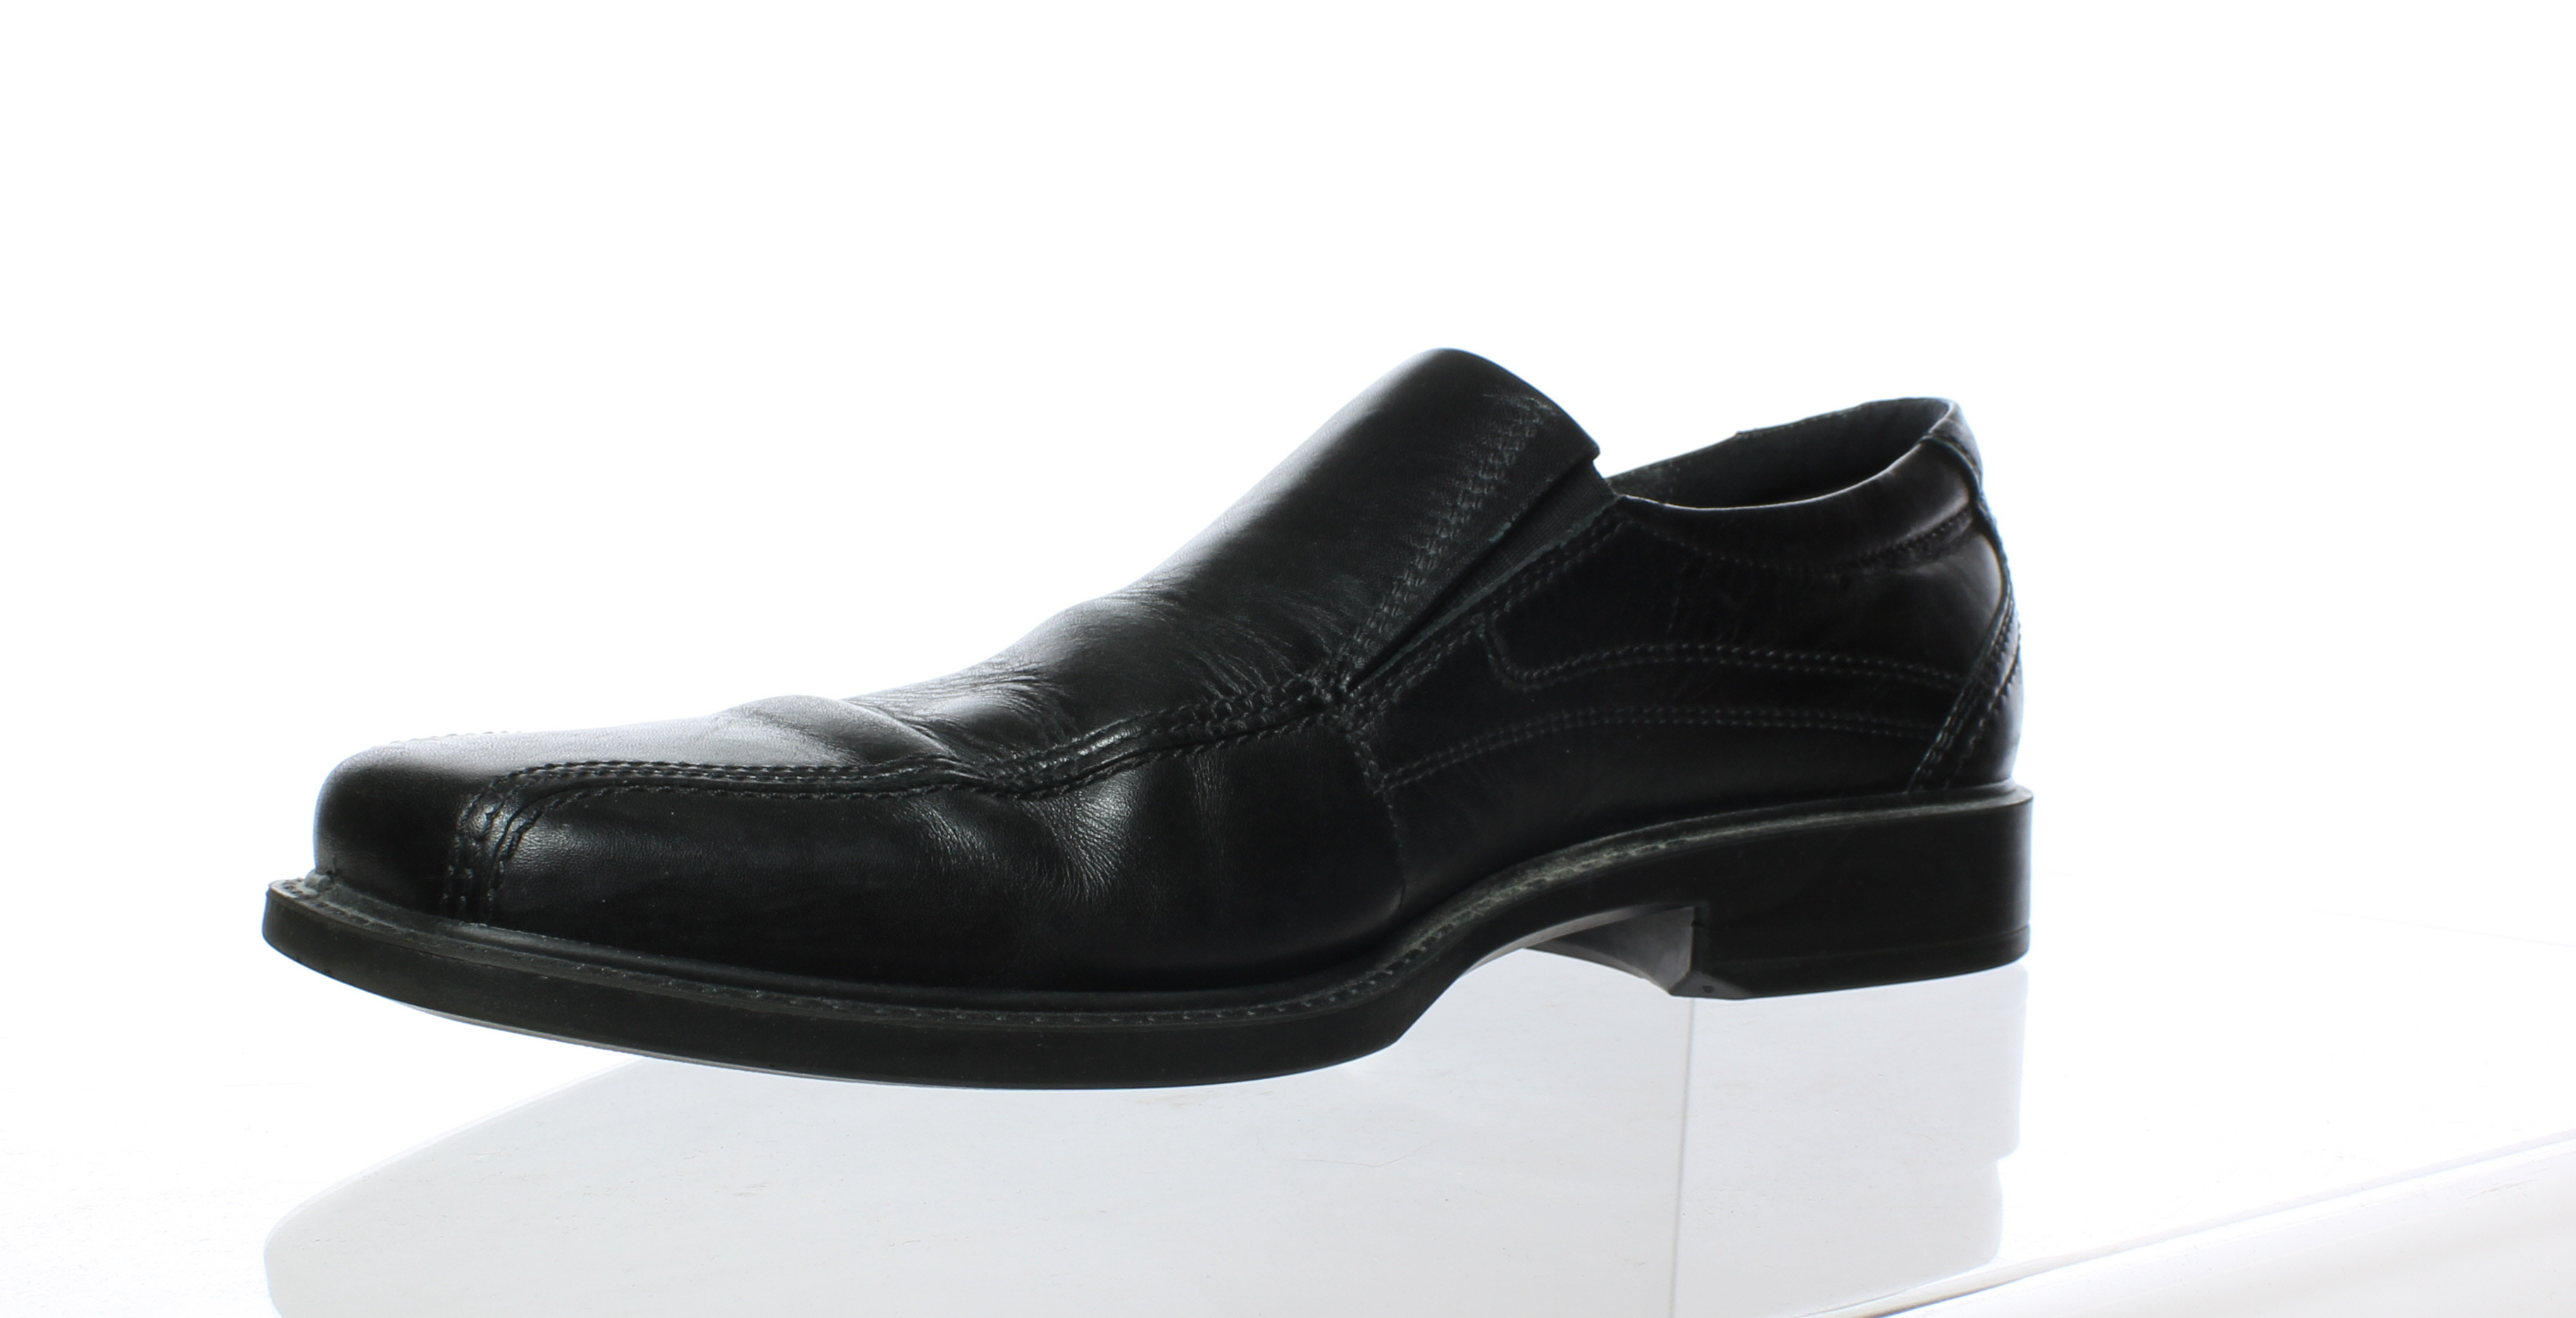 ECCO MENS Black Loafers Size 12.5 (65637)